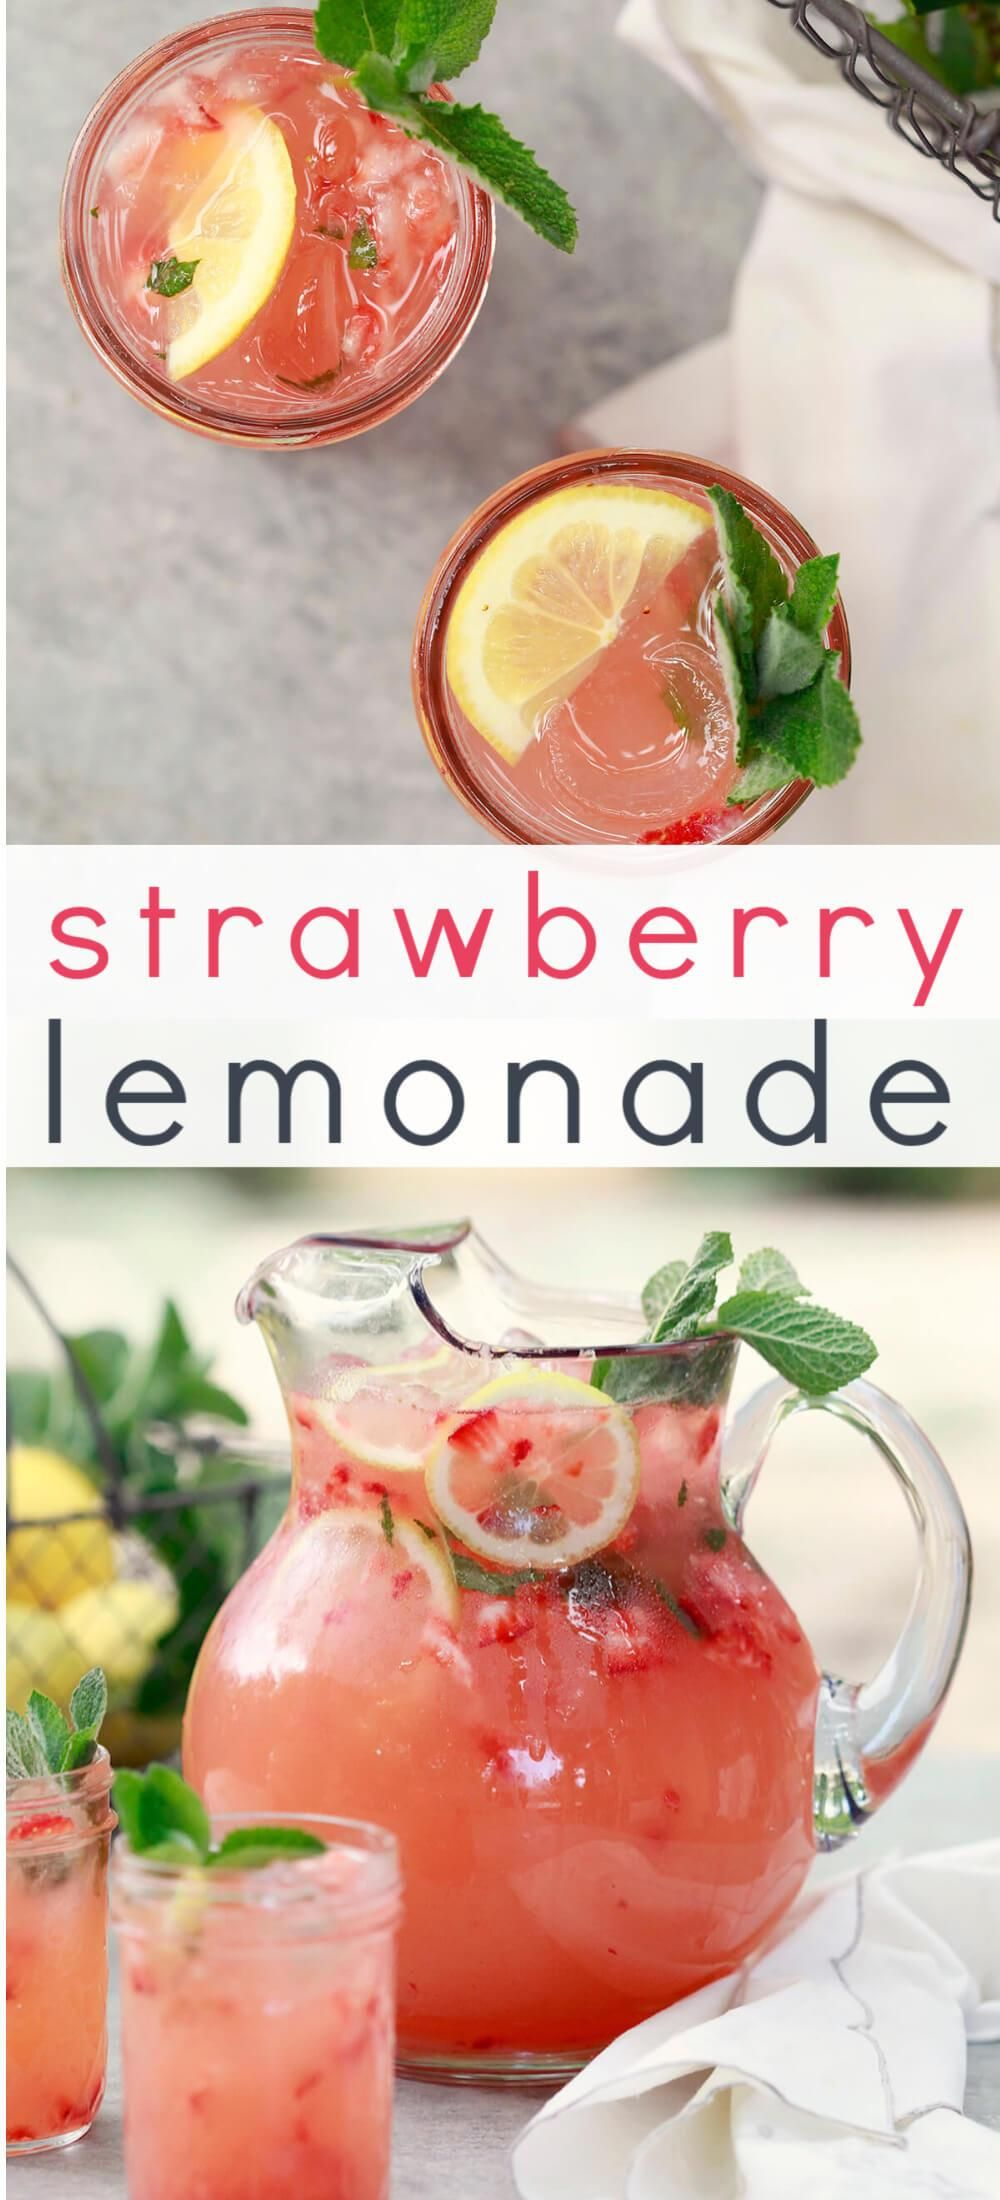 Homemade Strawberry Lemonade - Easy Blended Pink Lemonade Recipe